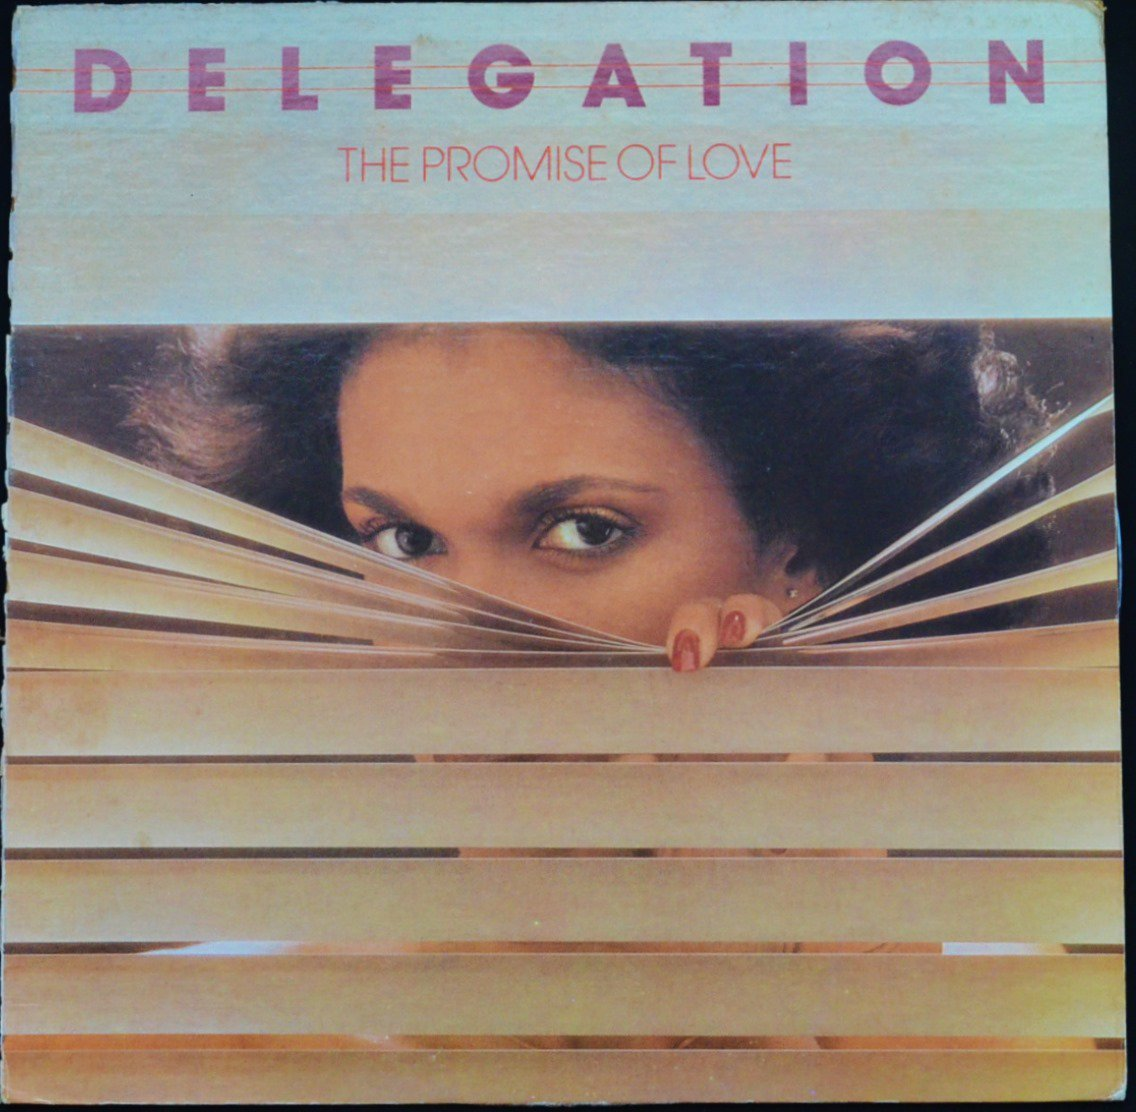 DELEGATION / THE PROMISE OF LOVE (LP)